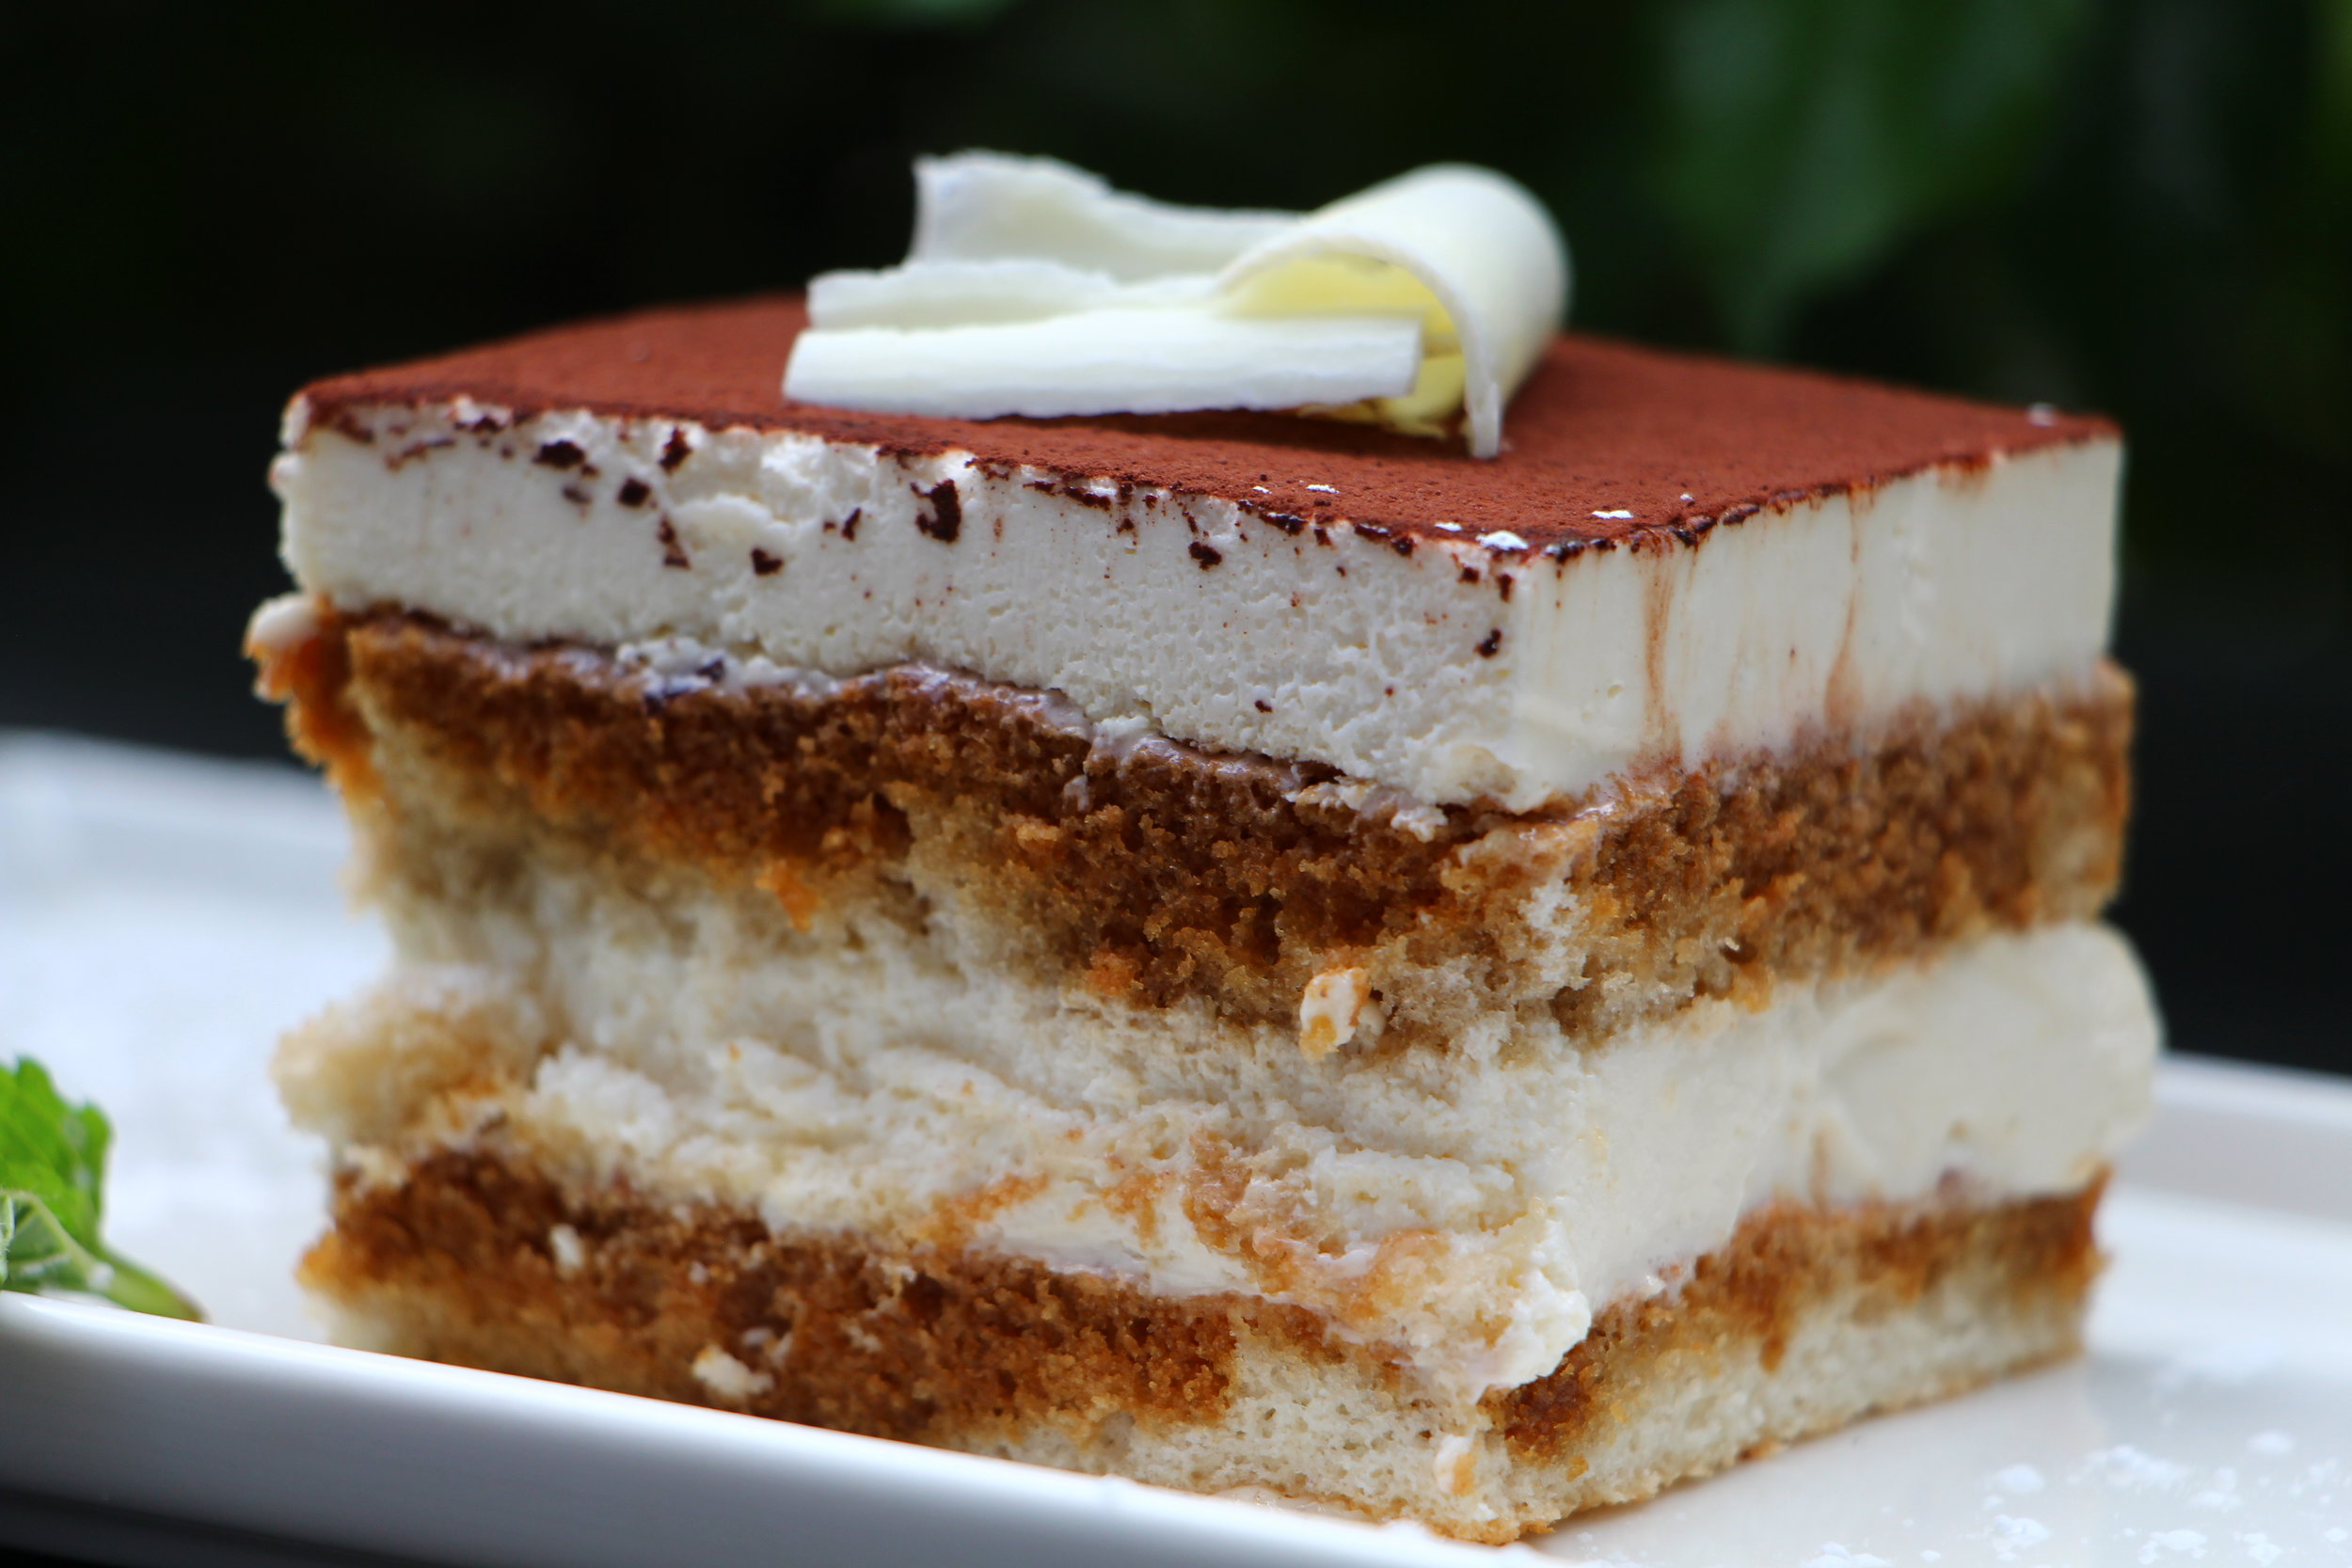 This chic Italian dessert that is the perfect balance between coffee and creamy mascarpone is divine and oh so romantic for your special date.